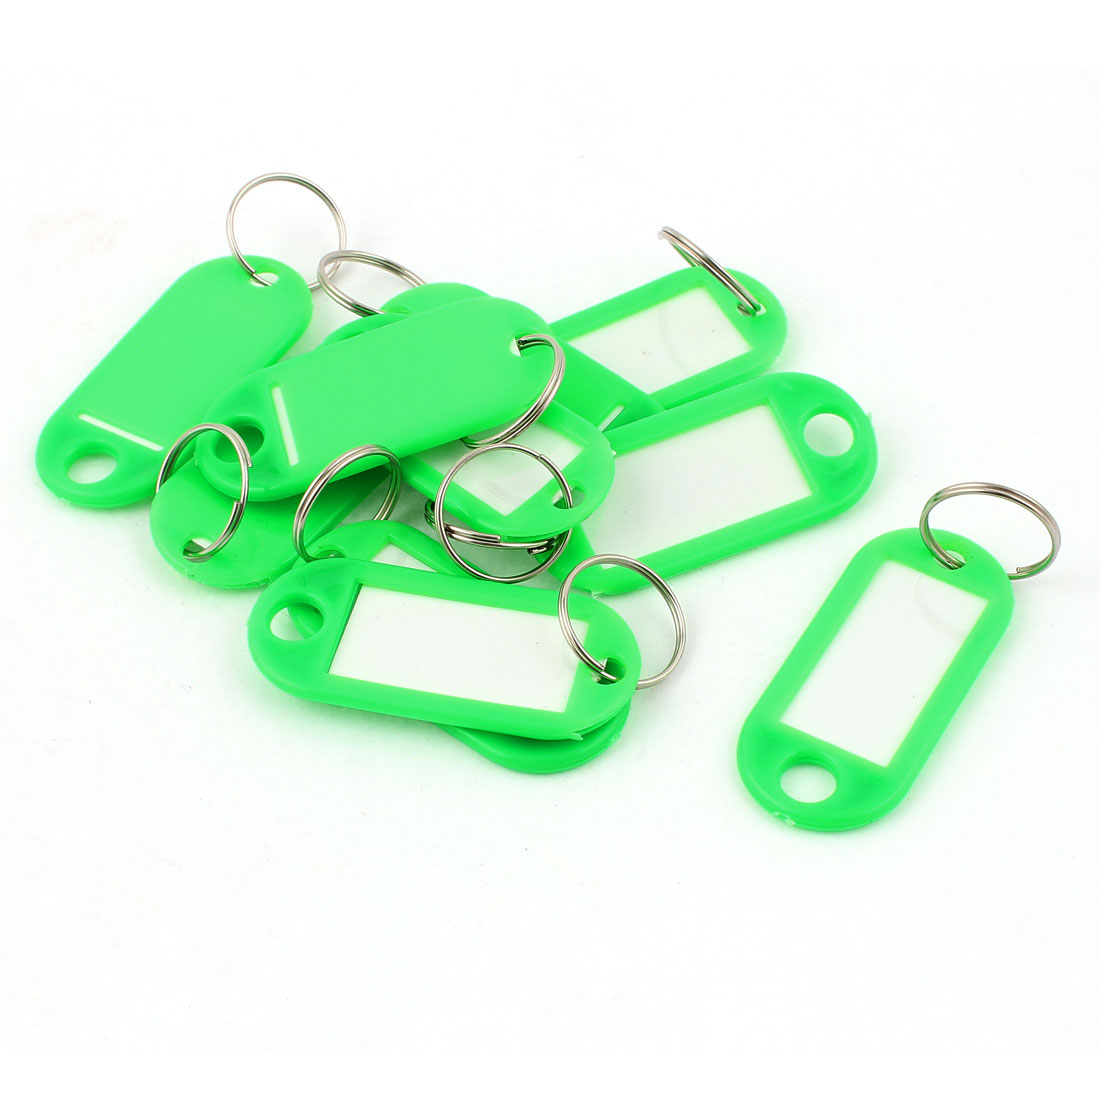 10Pcs Metal Ring Green Plastic Oval Key Fobs Luggage ID Label Name Tag Keyring Keychain